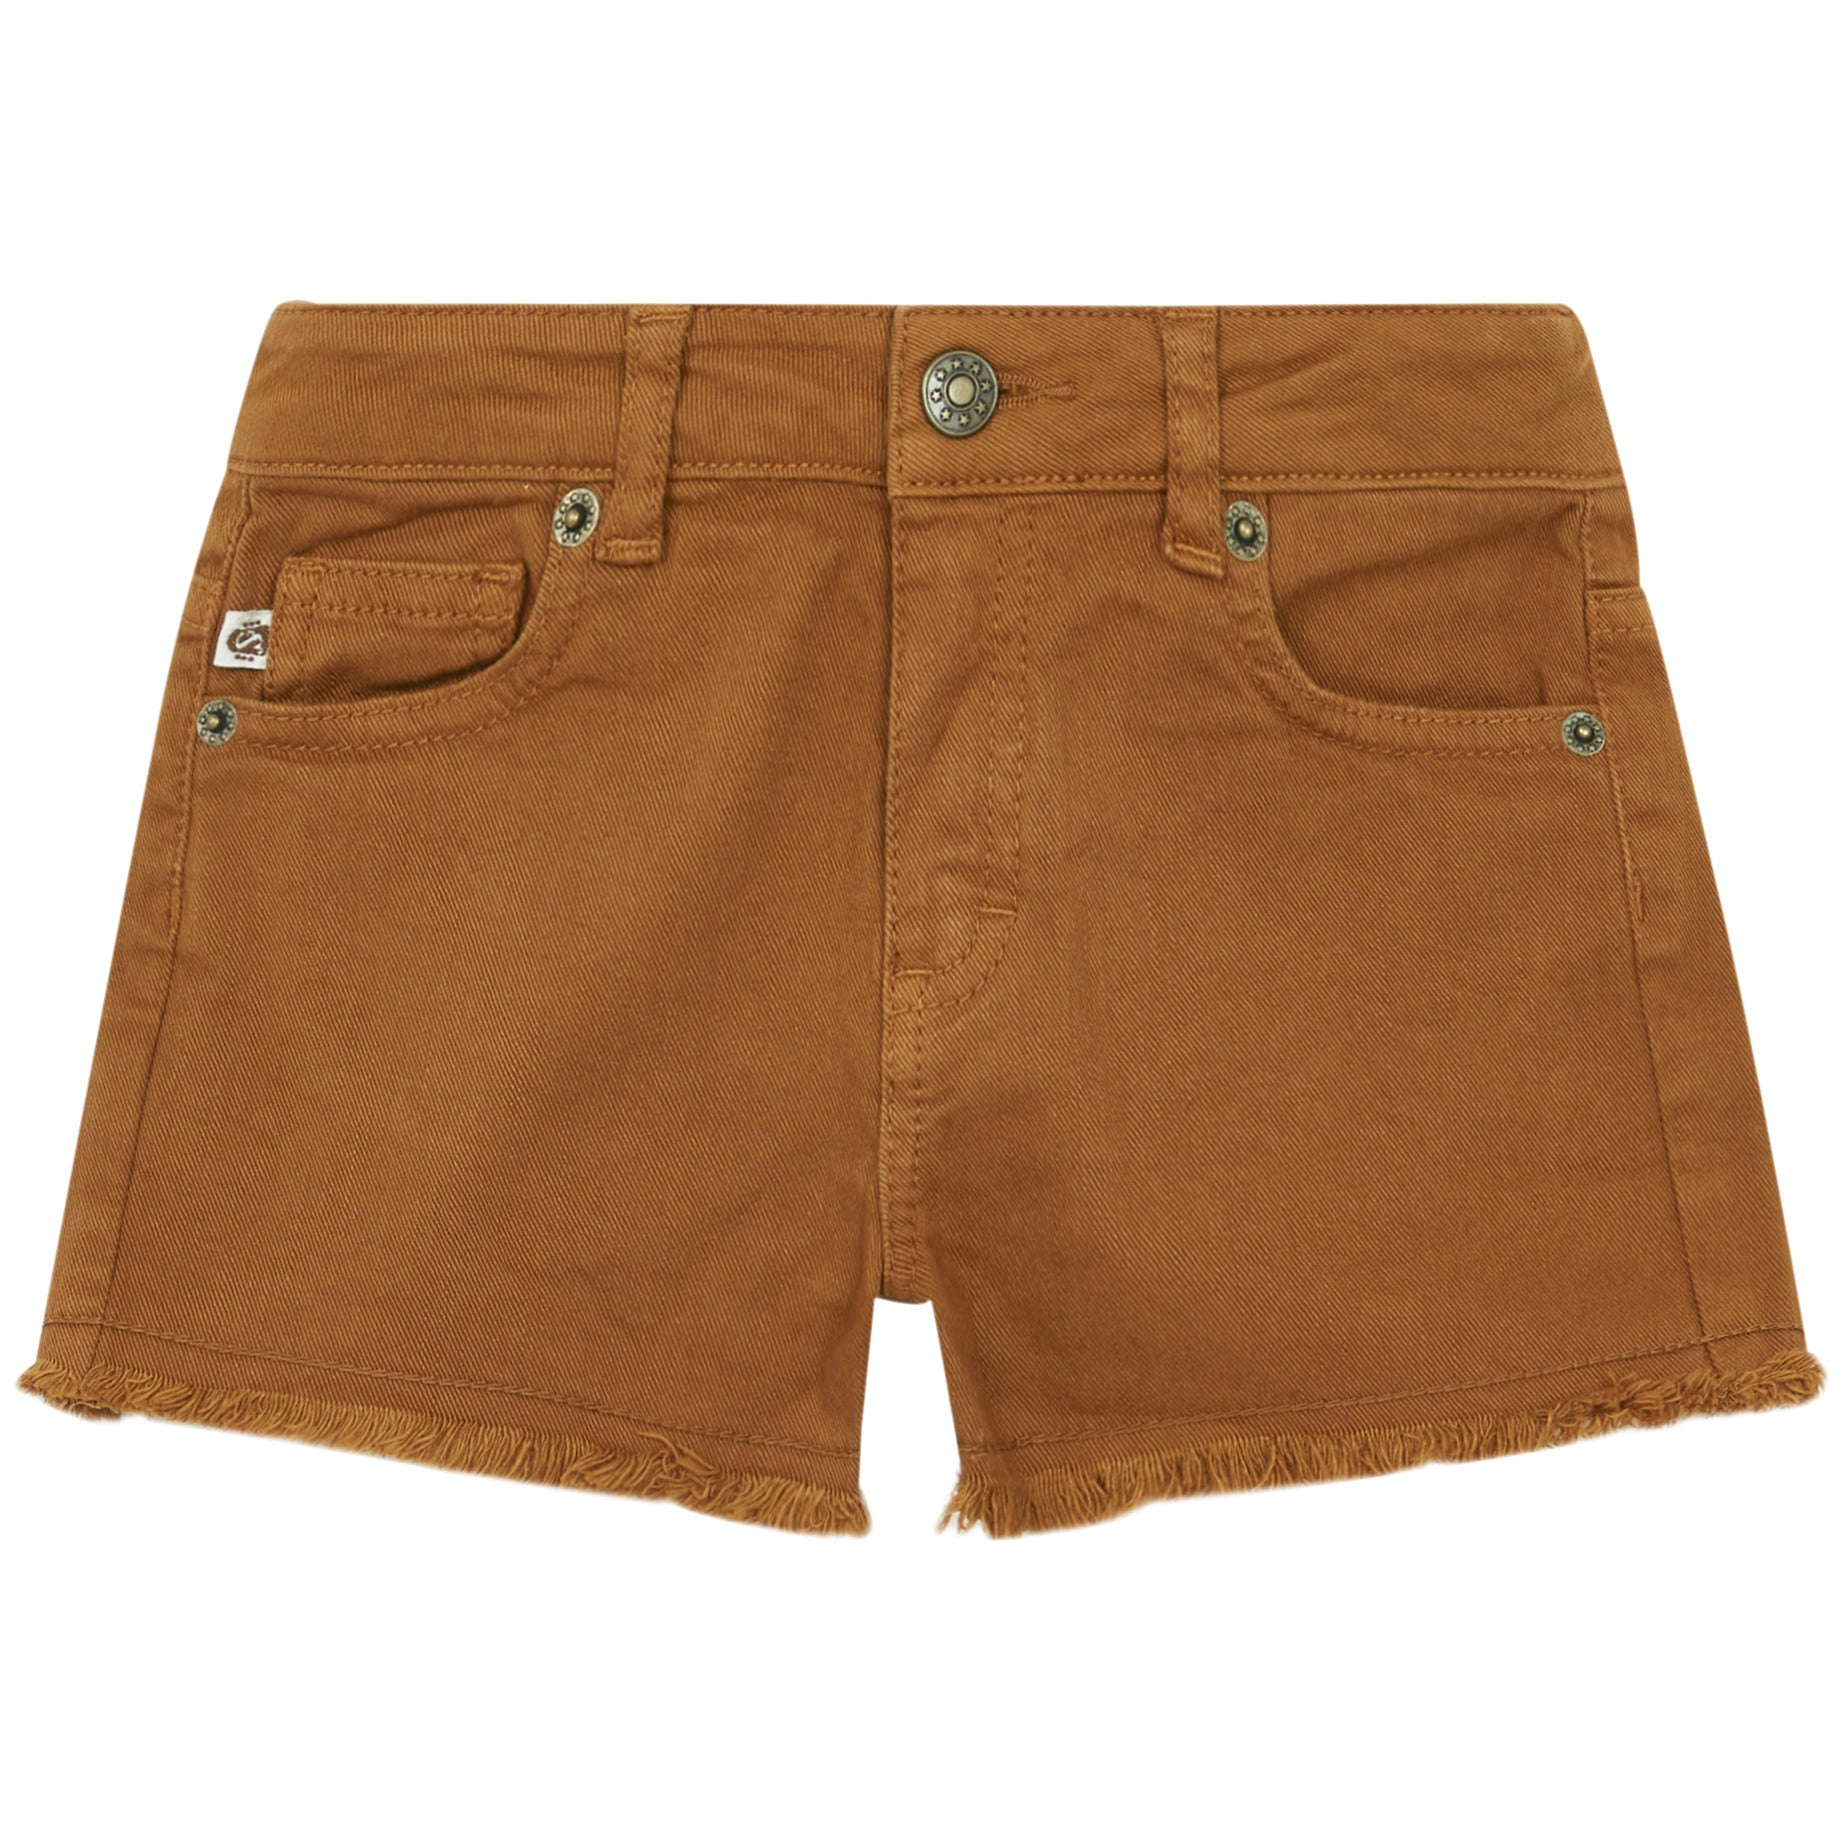 yoya, kids, girls,sunchild, summer, casual, twill, zip fly, five pocket, cut off shorts